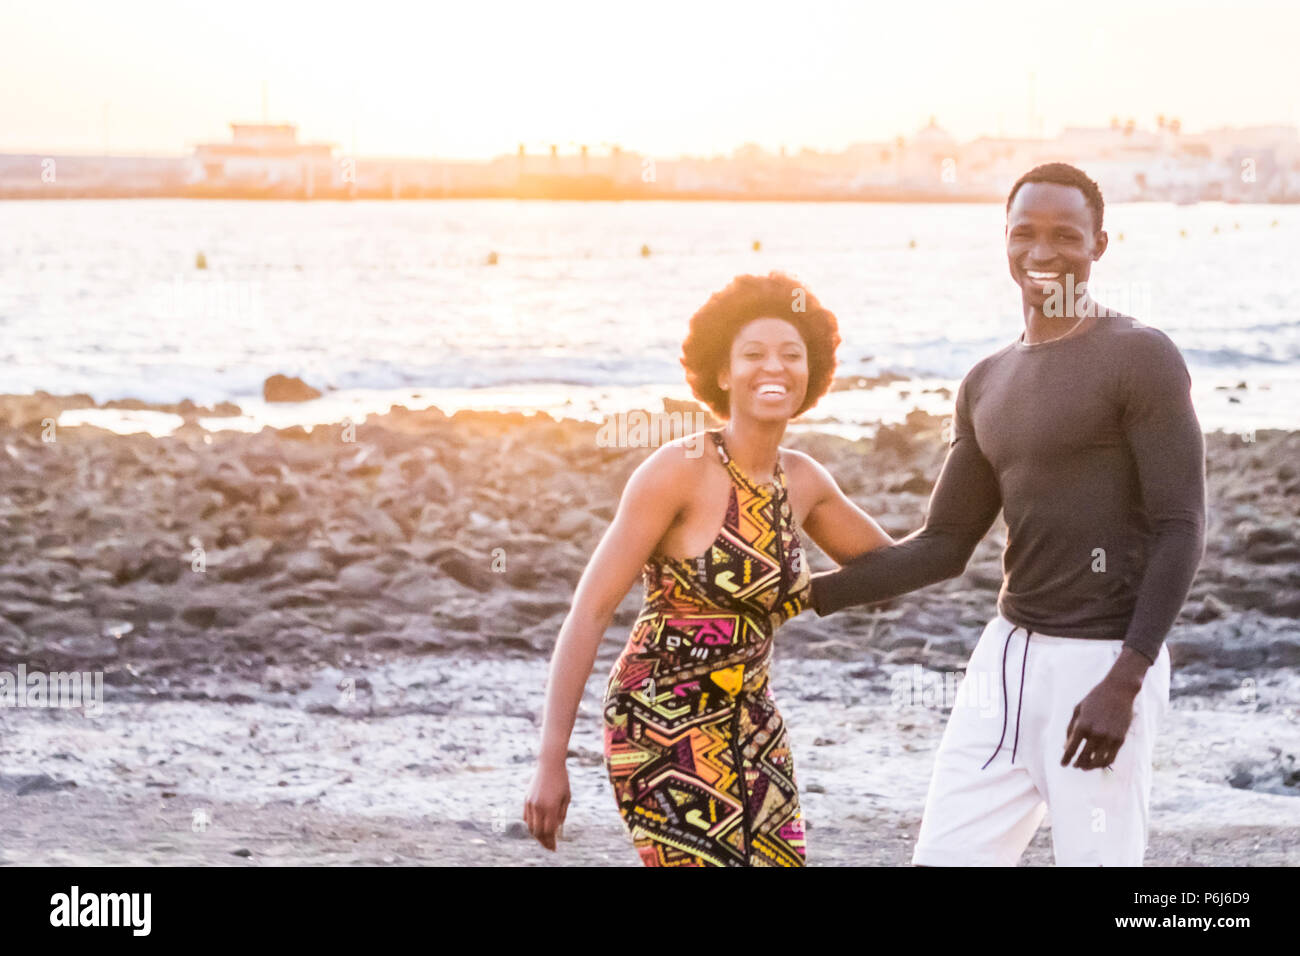 Happy black african race skin couple together having fun at the beach in vacation. happiness concept with two young man and woman having fun together. - Stock Image